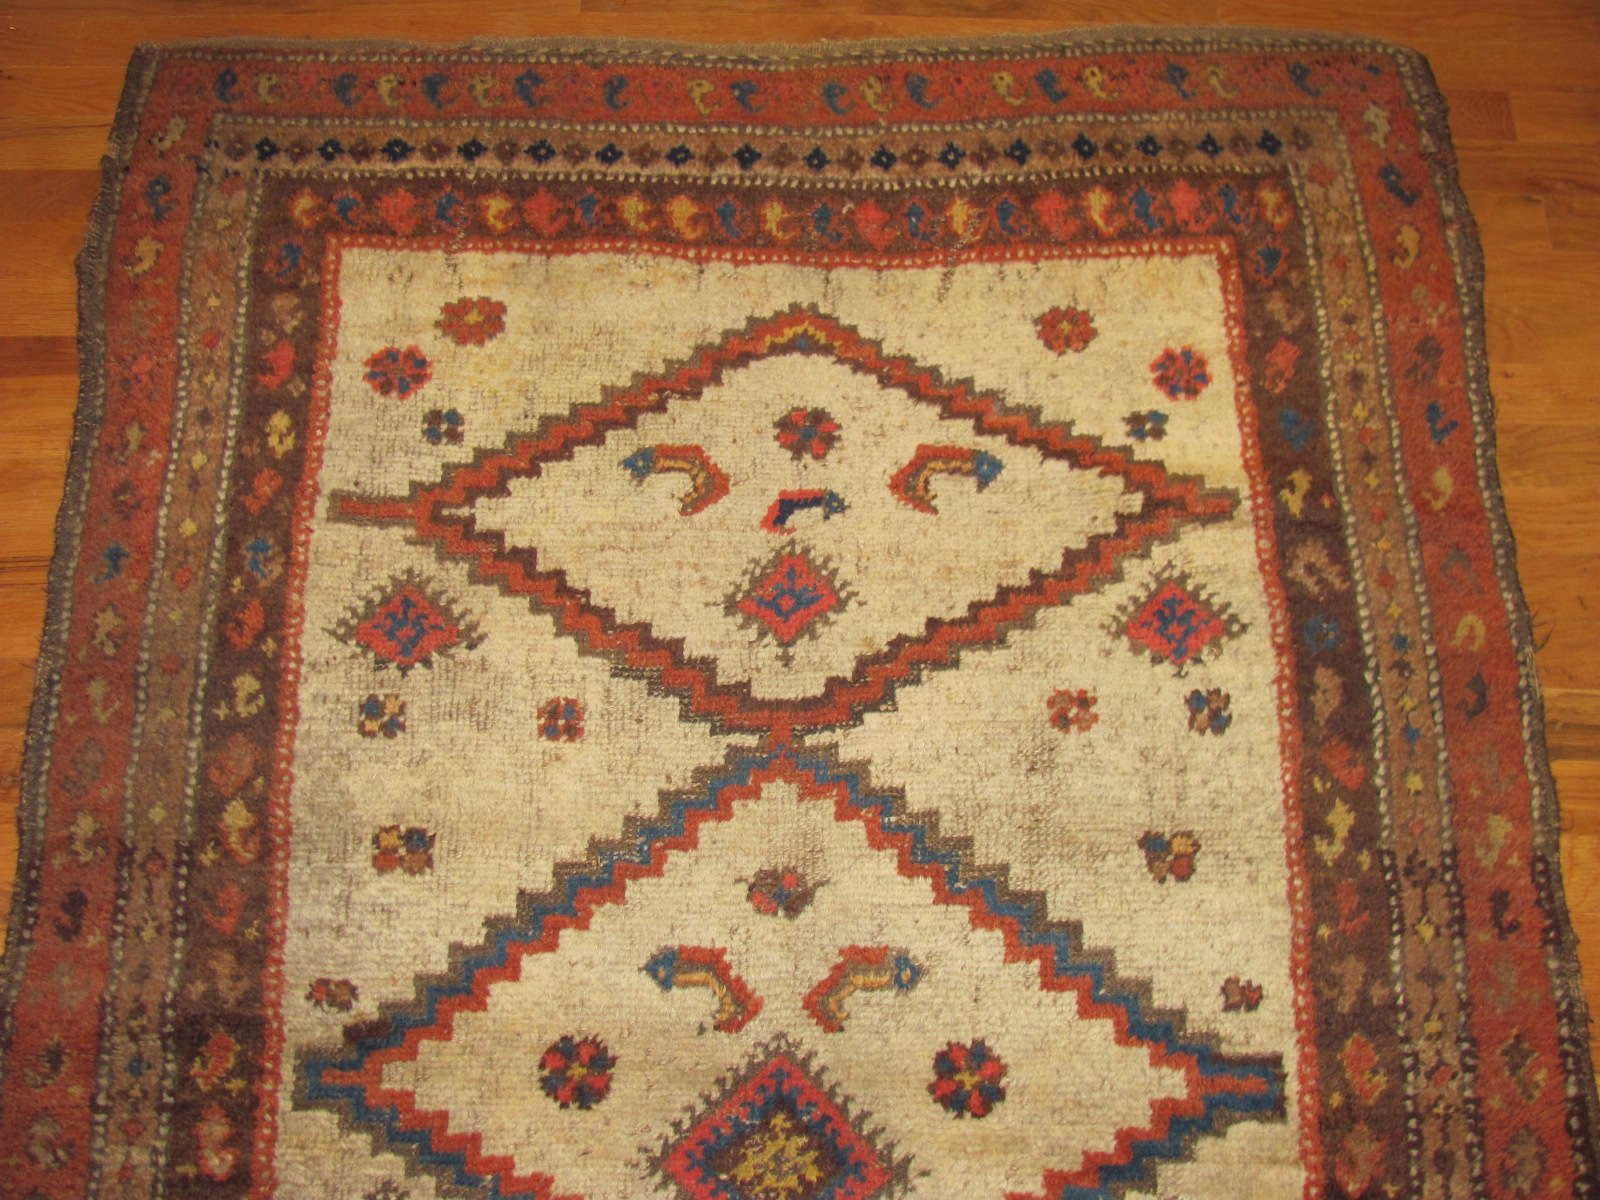 24639 antique persian kurd rug 3,9 x 5,7 -1